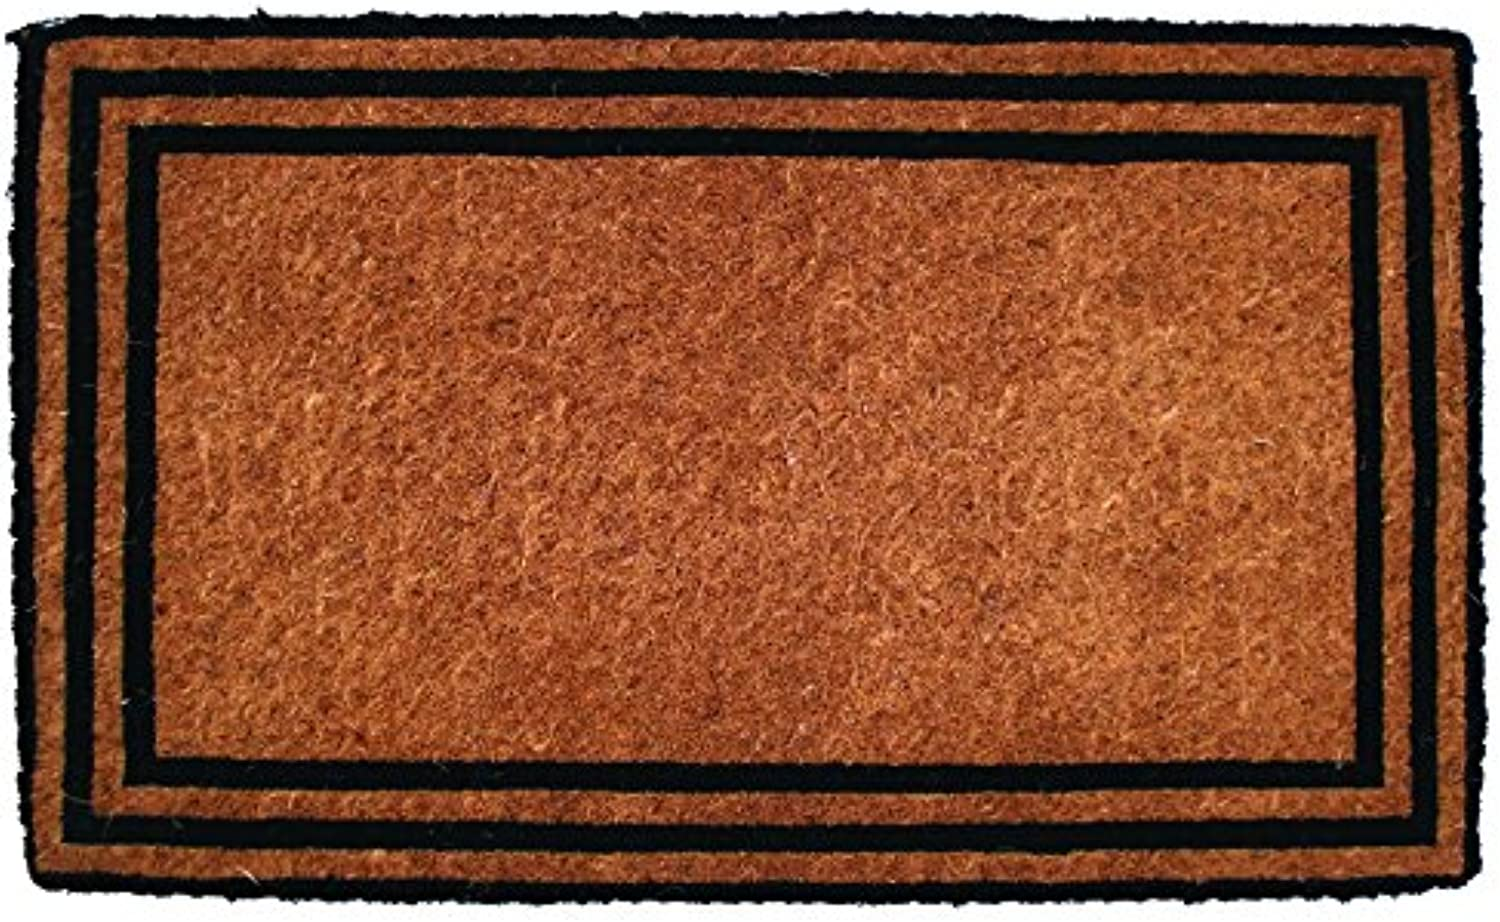 Entryways The One with The Border Handwoven Extra Thick Coconut Fiber Doormat